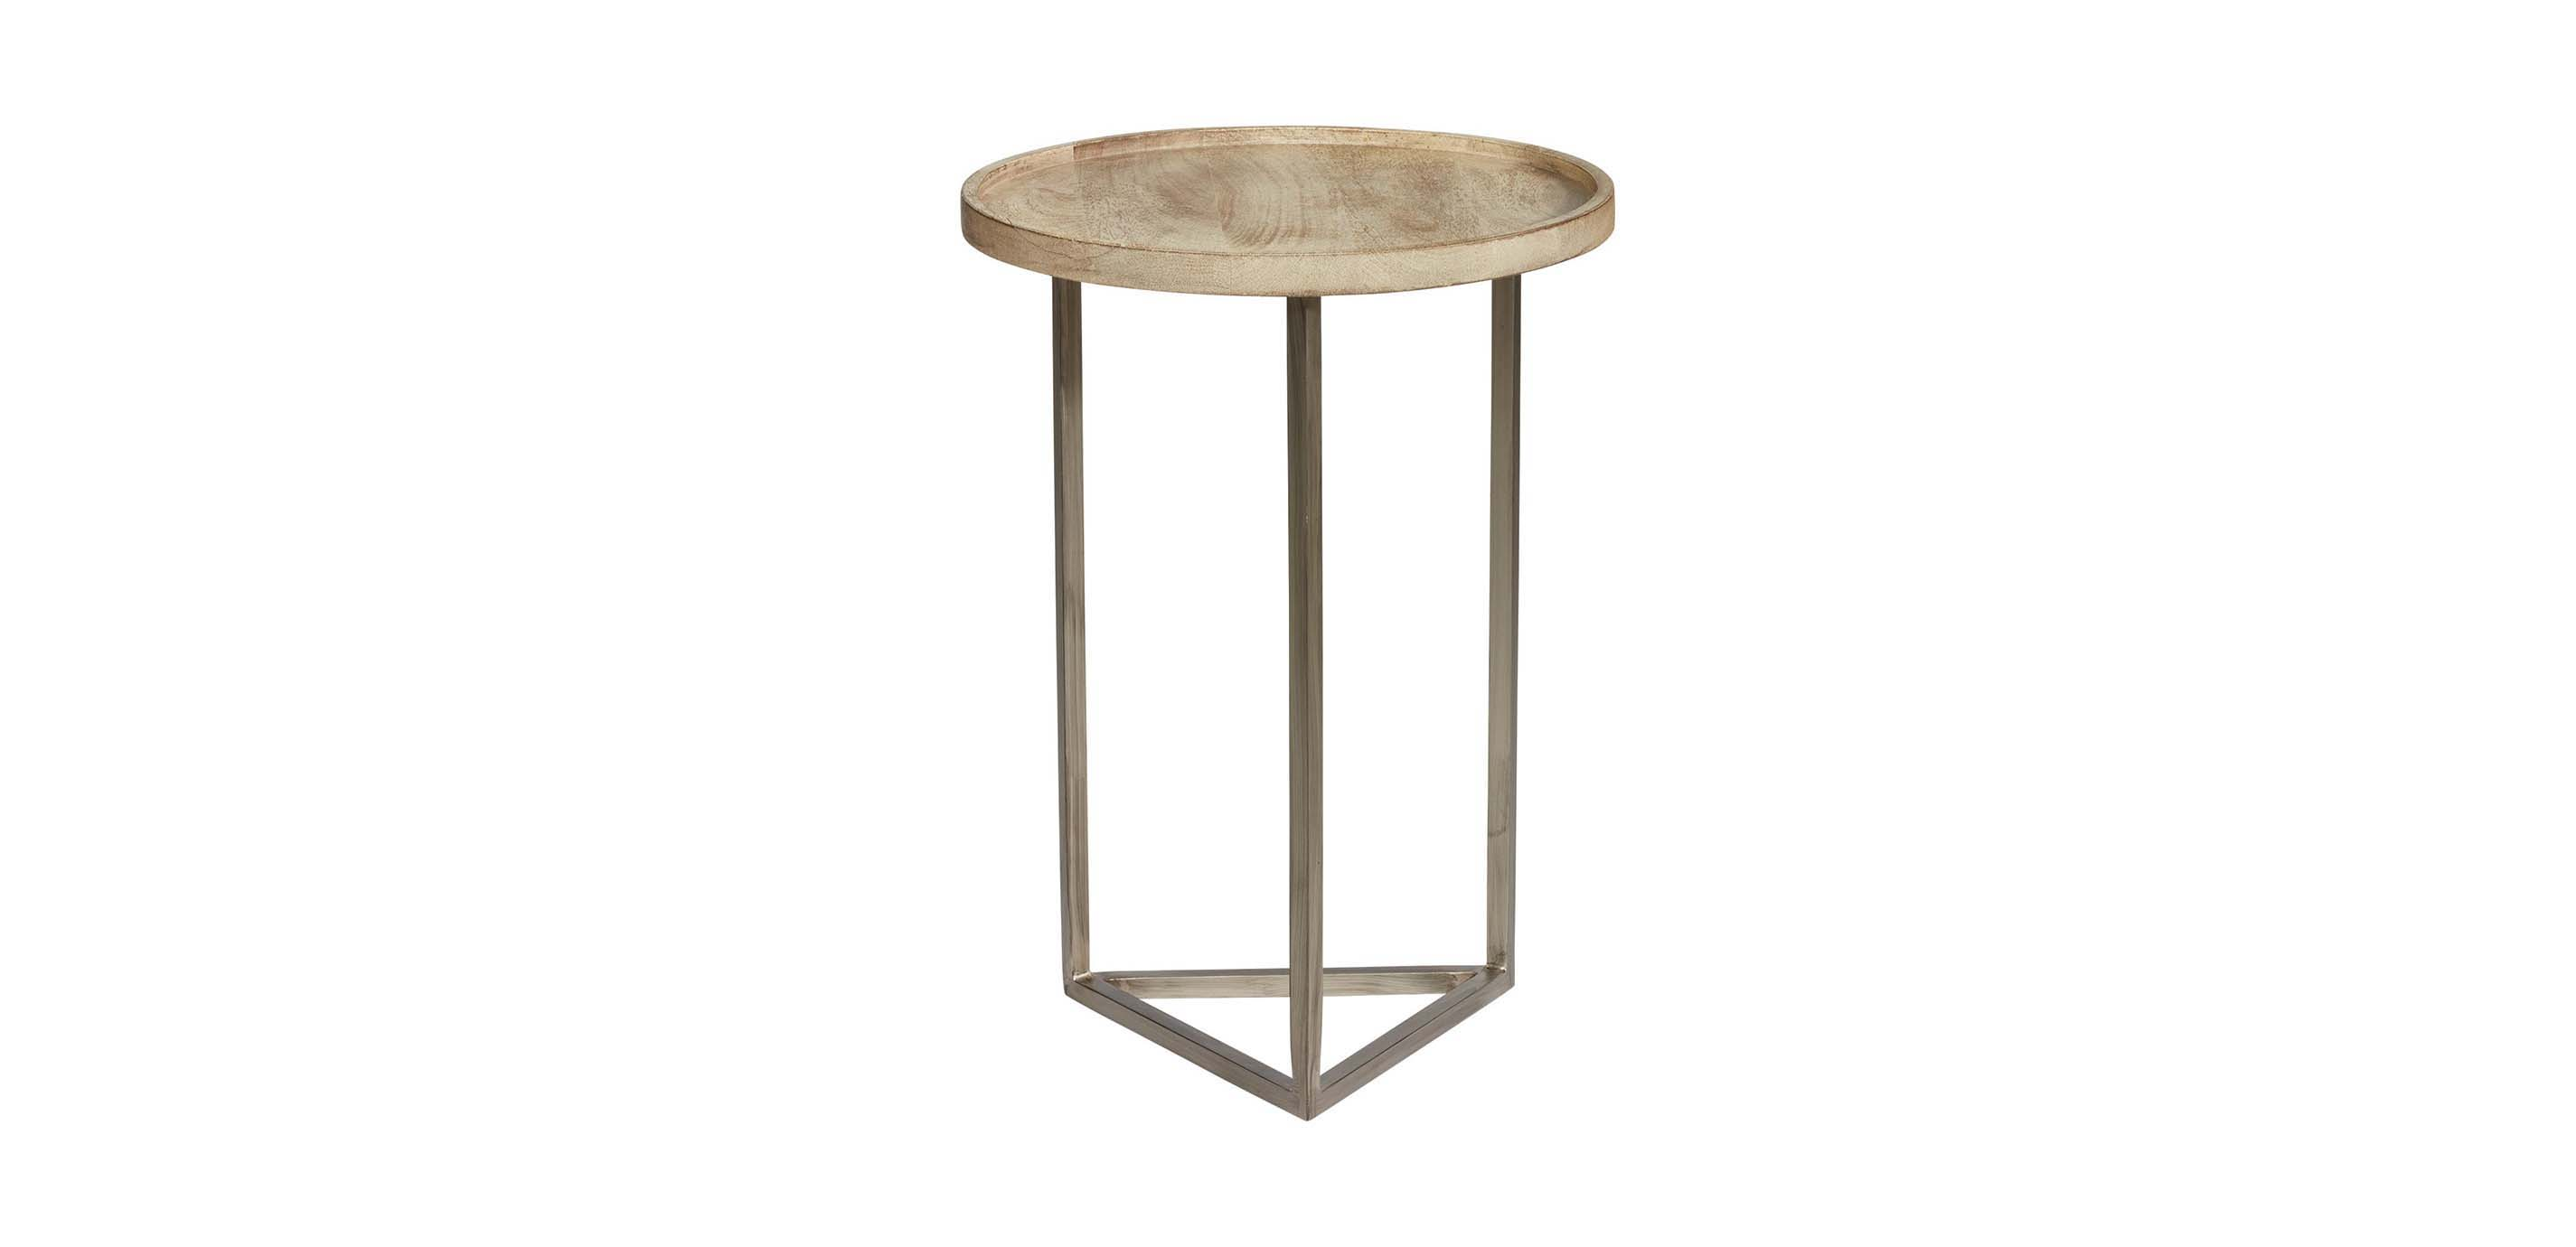 - Bolton Round Mango Wood Accent Table Ethan Allen Accent Tables